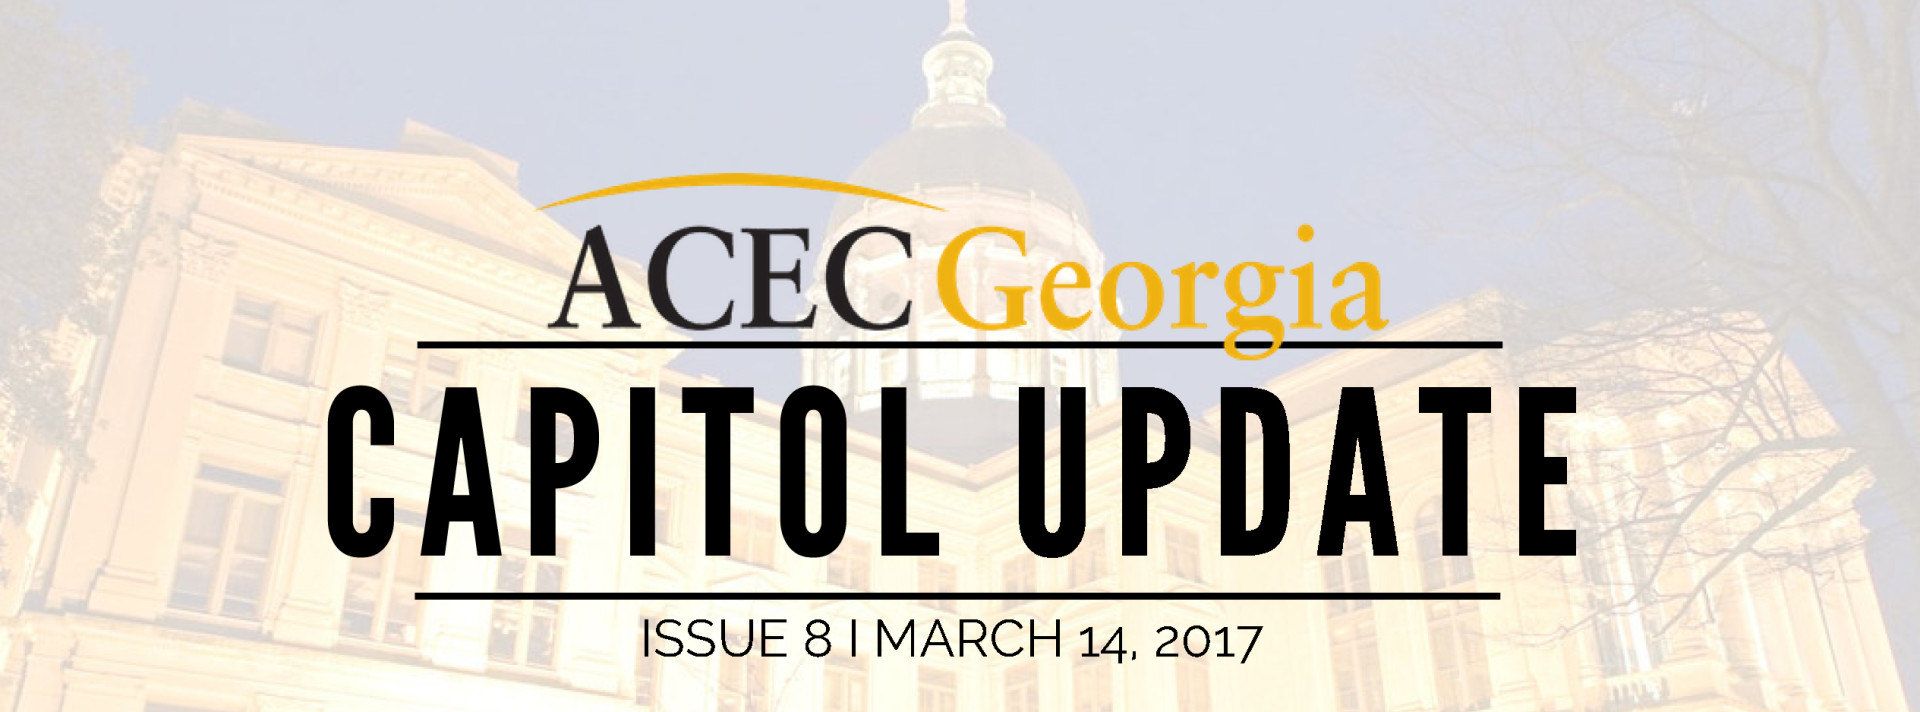 ACEC Georgia Capitol Update: Issue 8